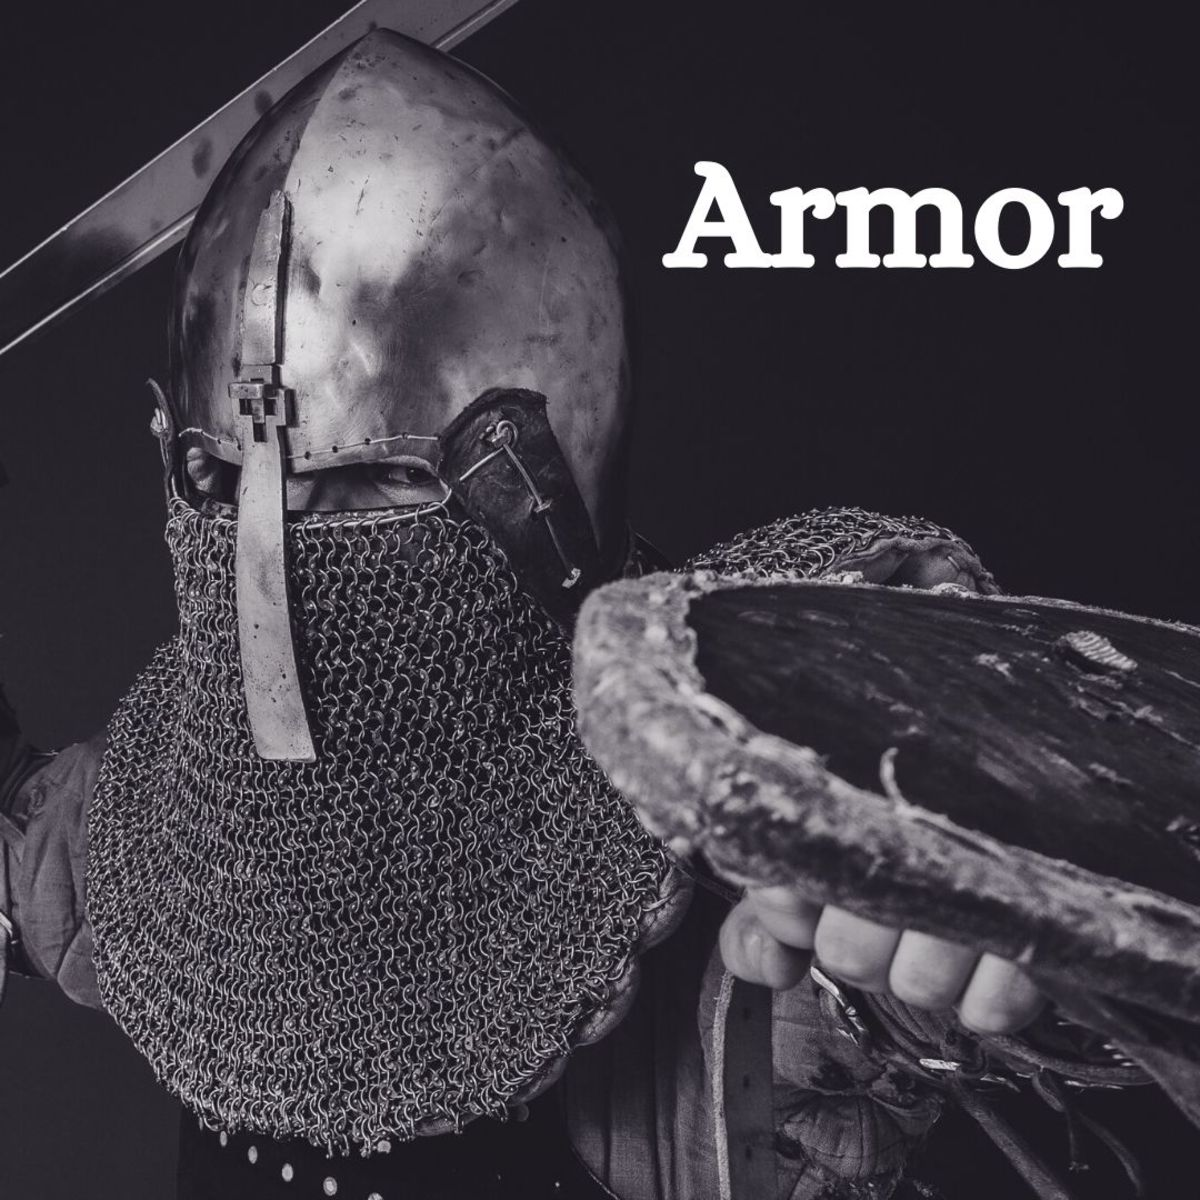 Armor is a fun and unique collecting idea.